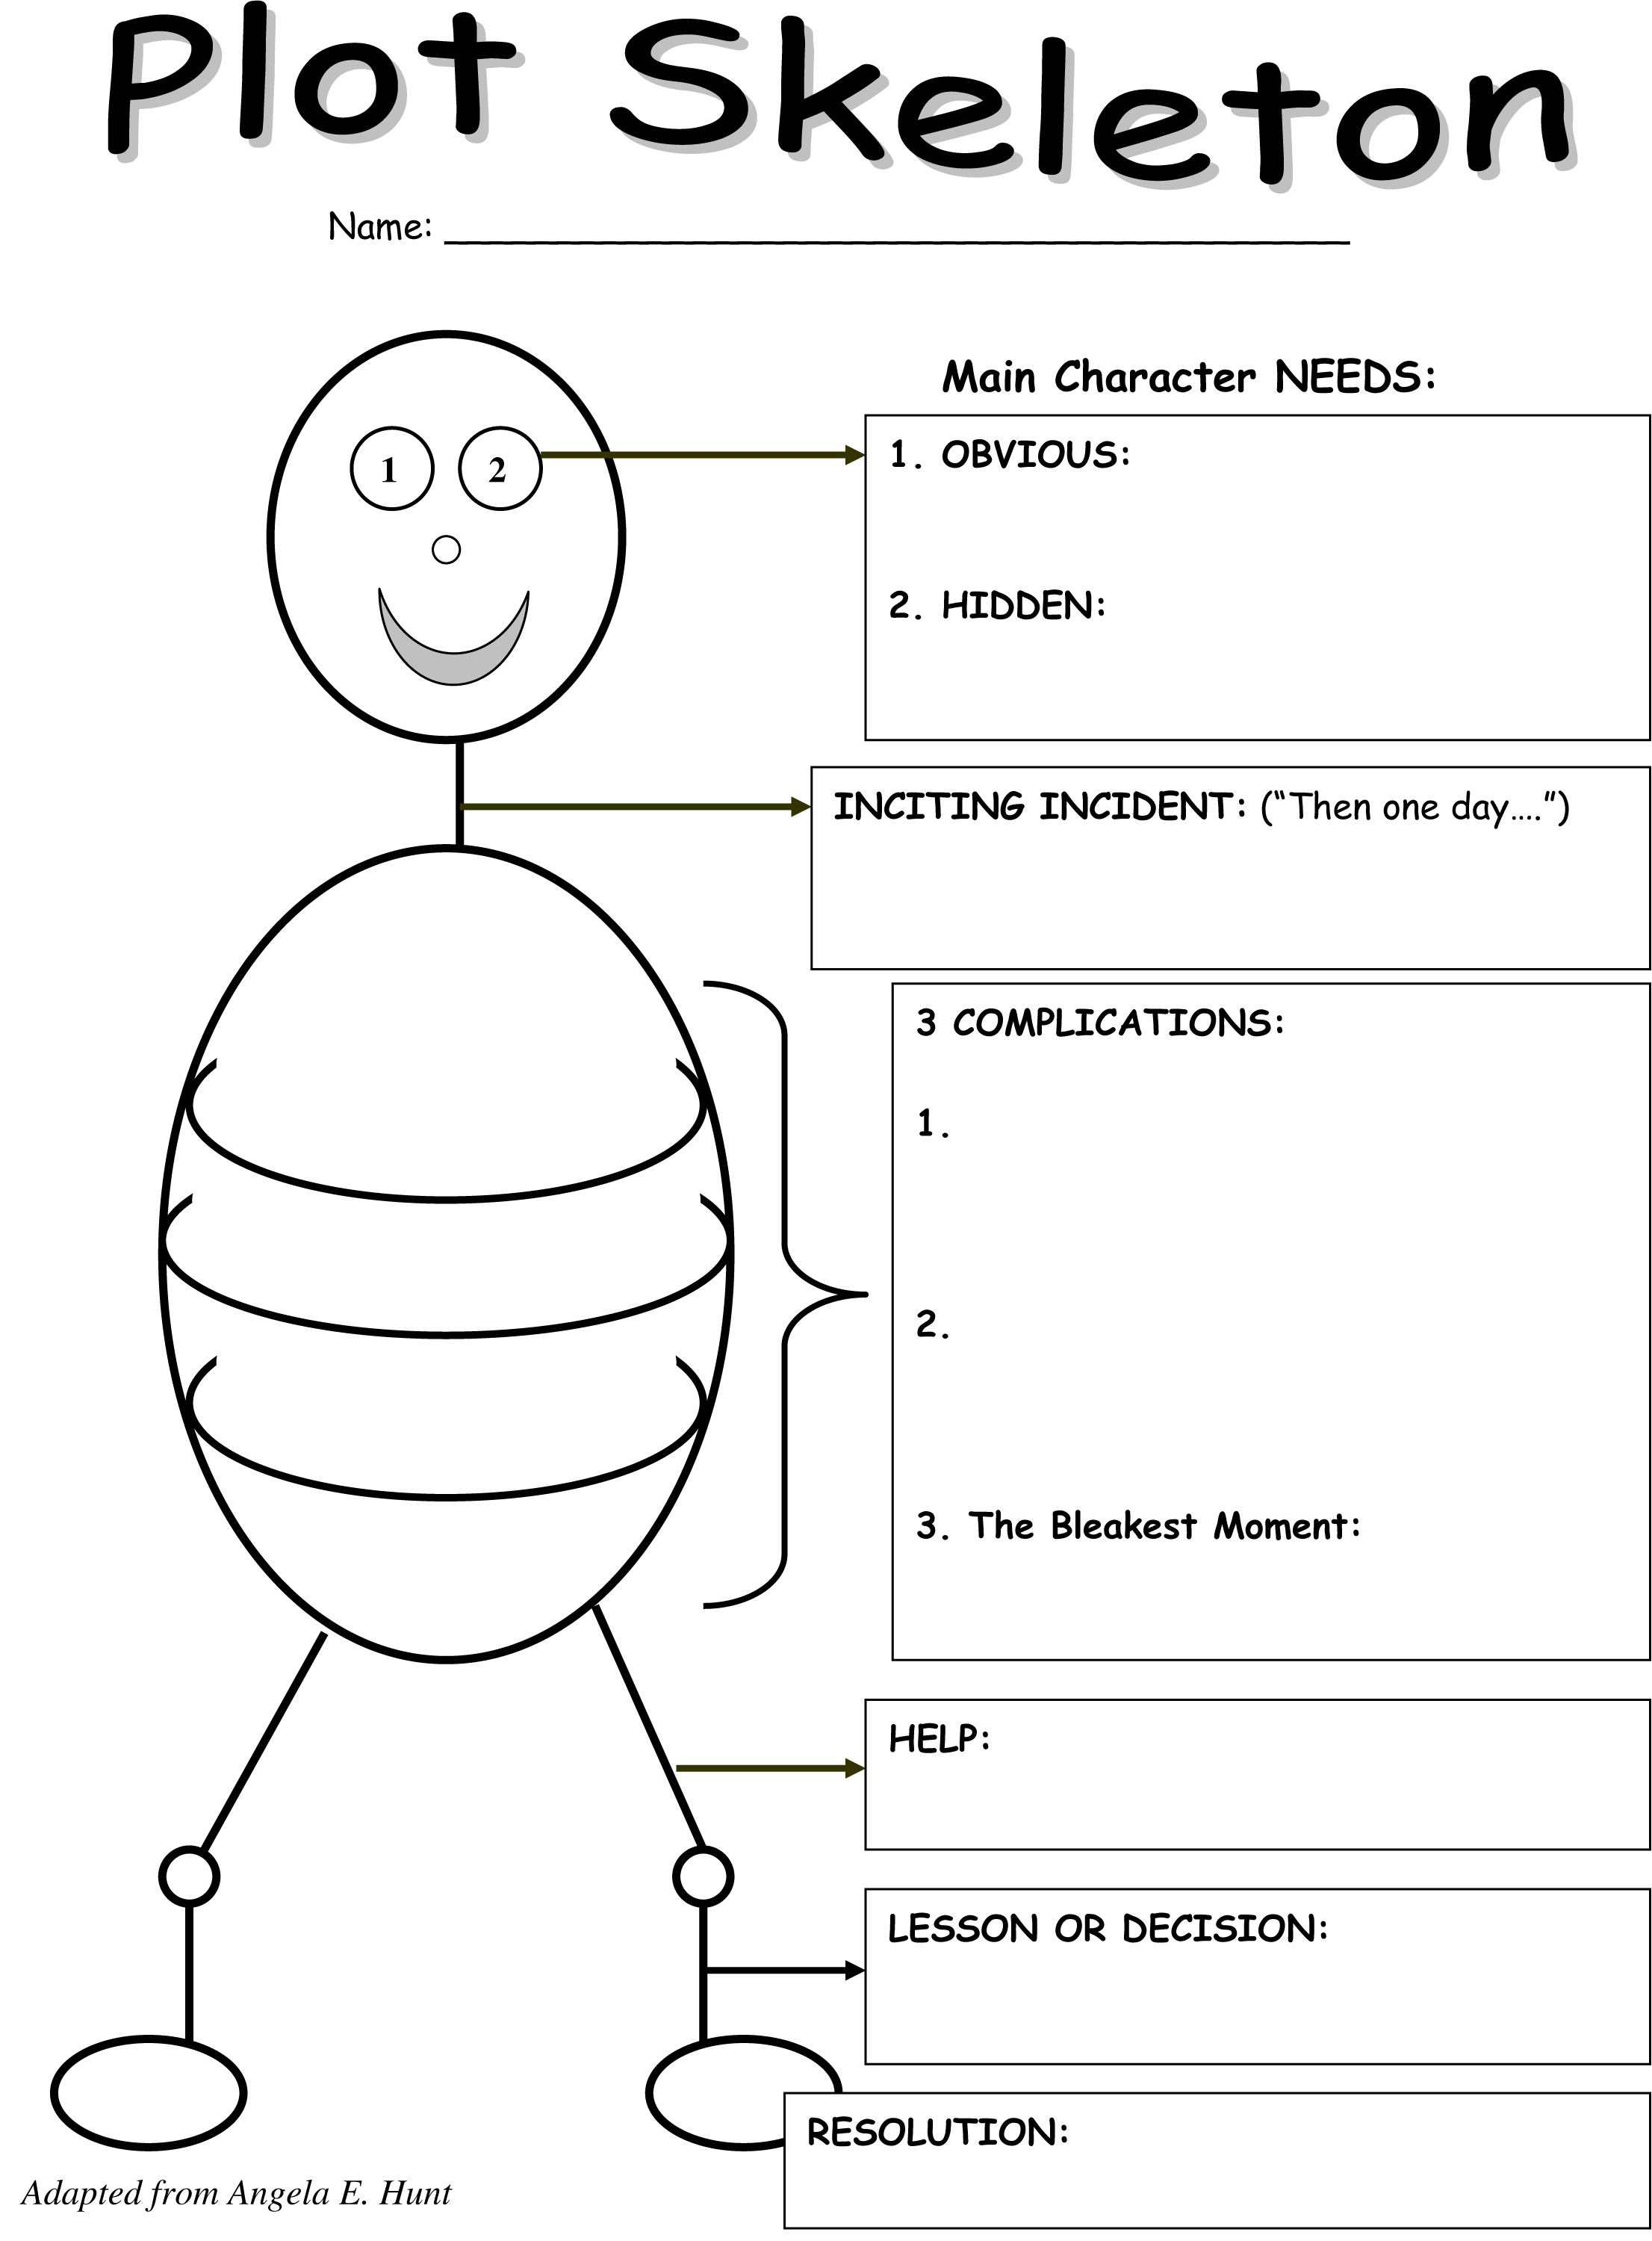 story outline template for kids - the plot thickens a graphic organizer for teaching